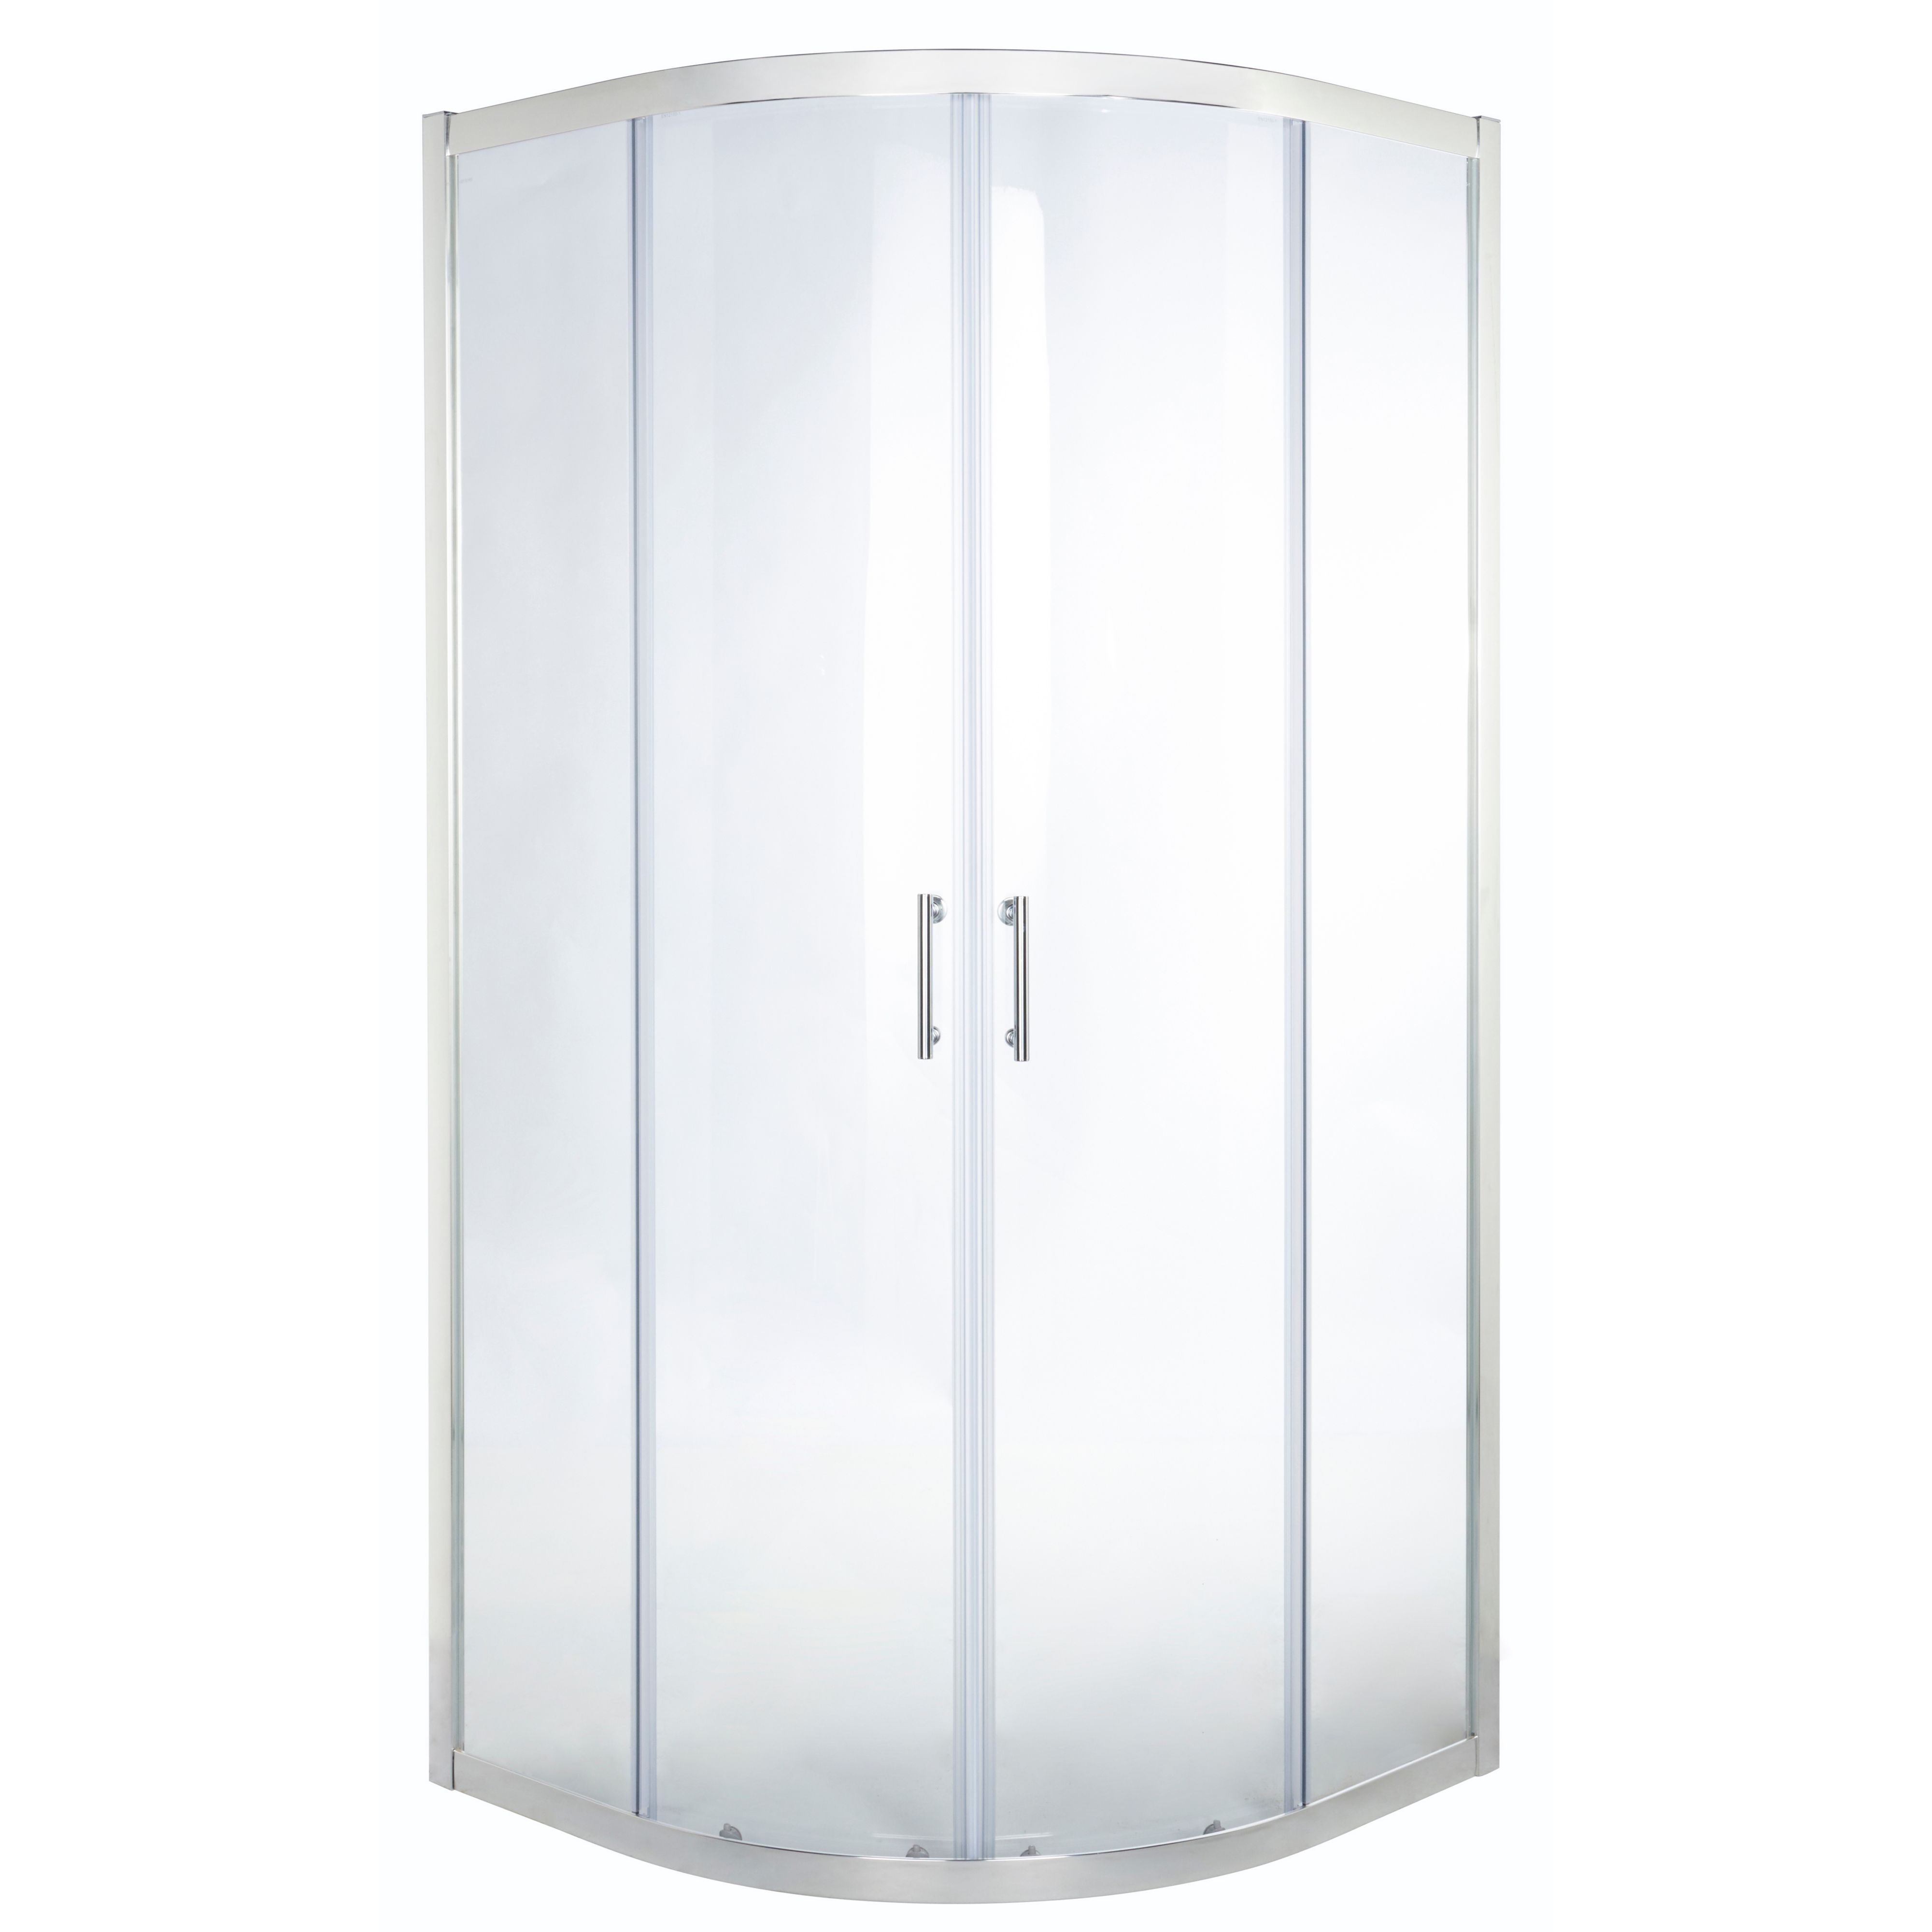 Cooke & Lewis Onega Quadrant Shower Enclosure With Corner Entry Double Sliding Door (w)900mm (d)900mm